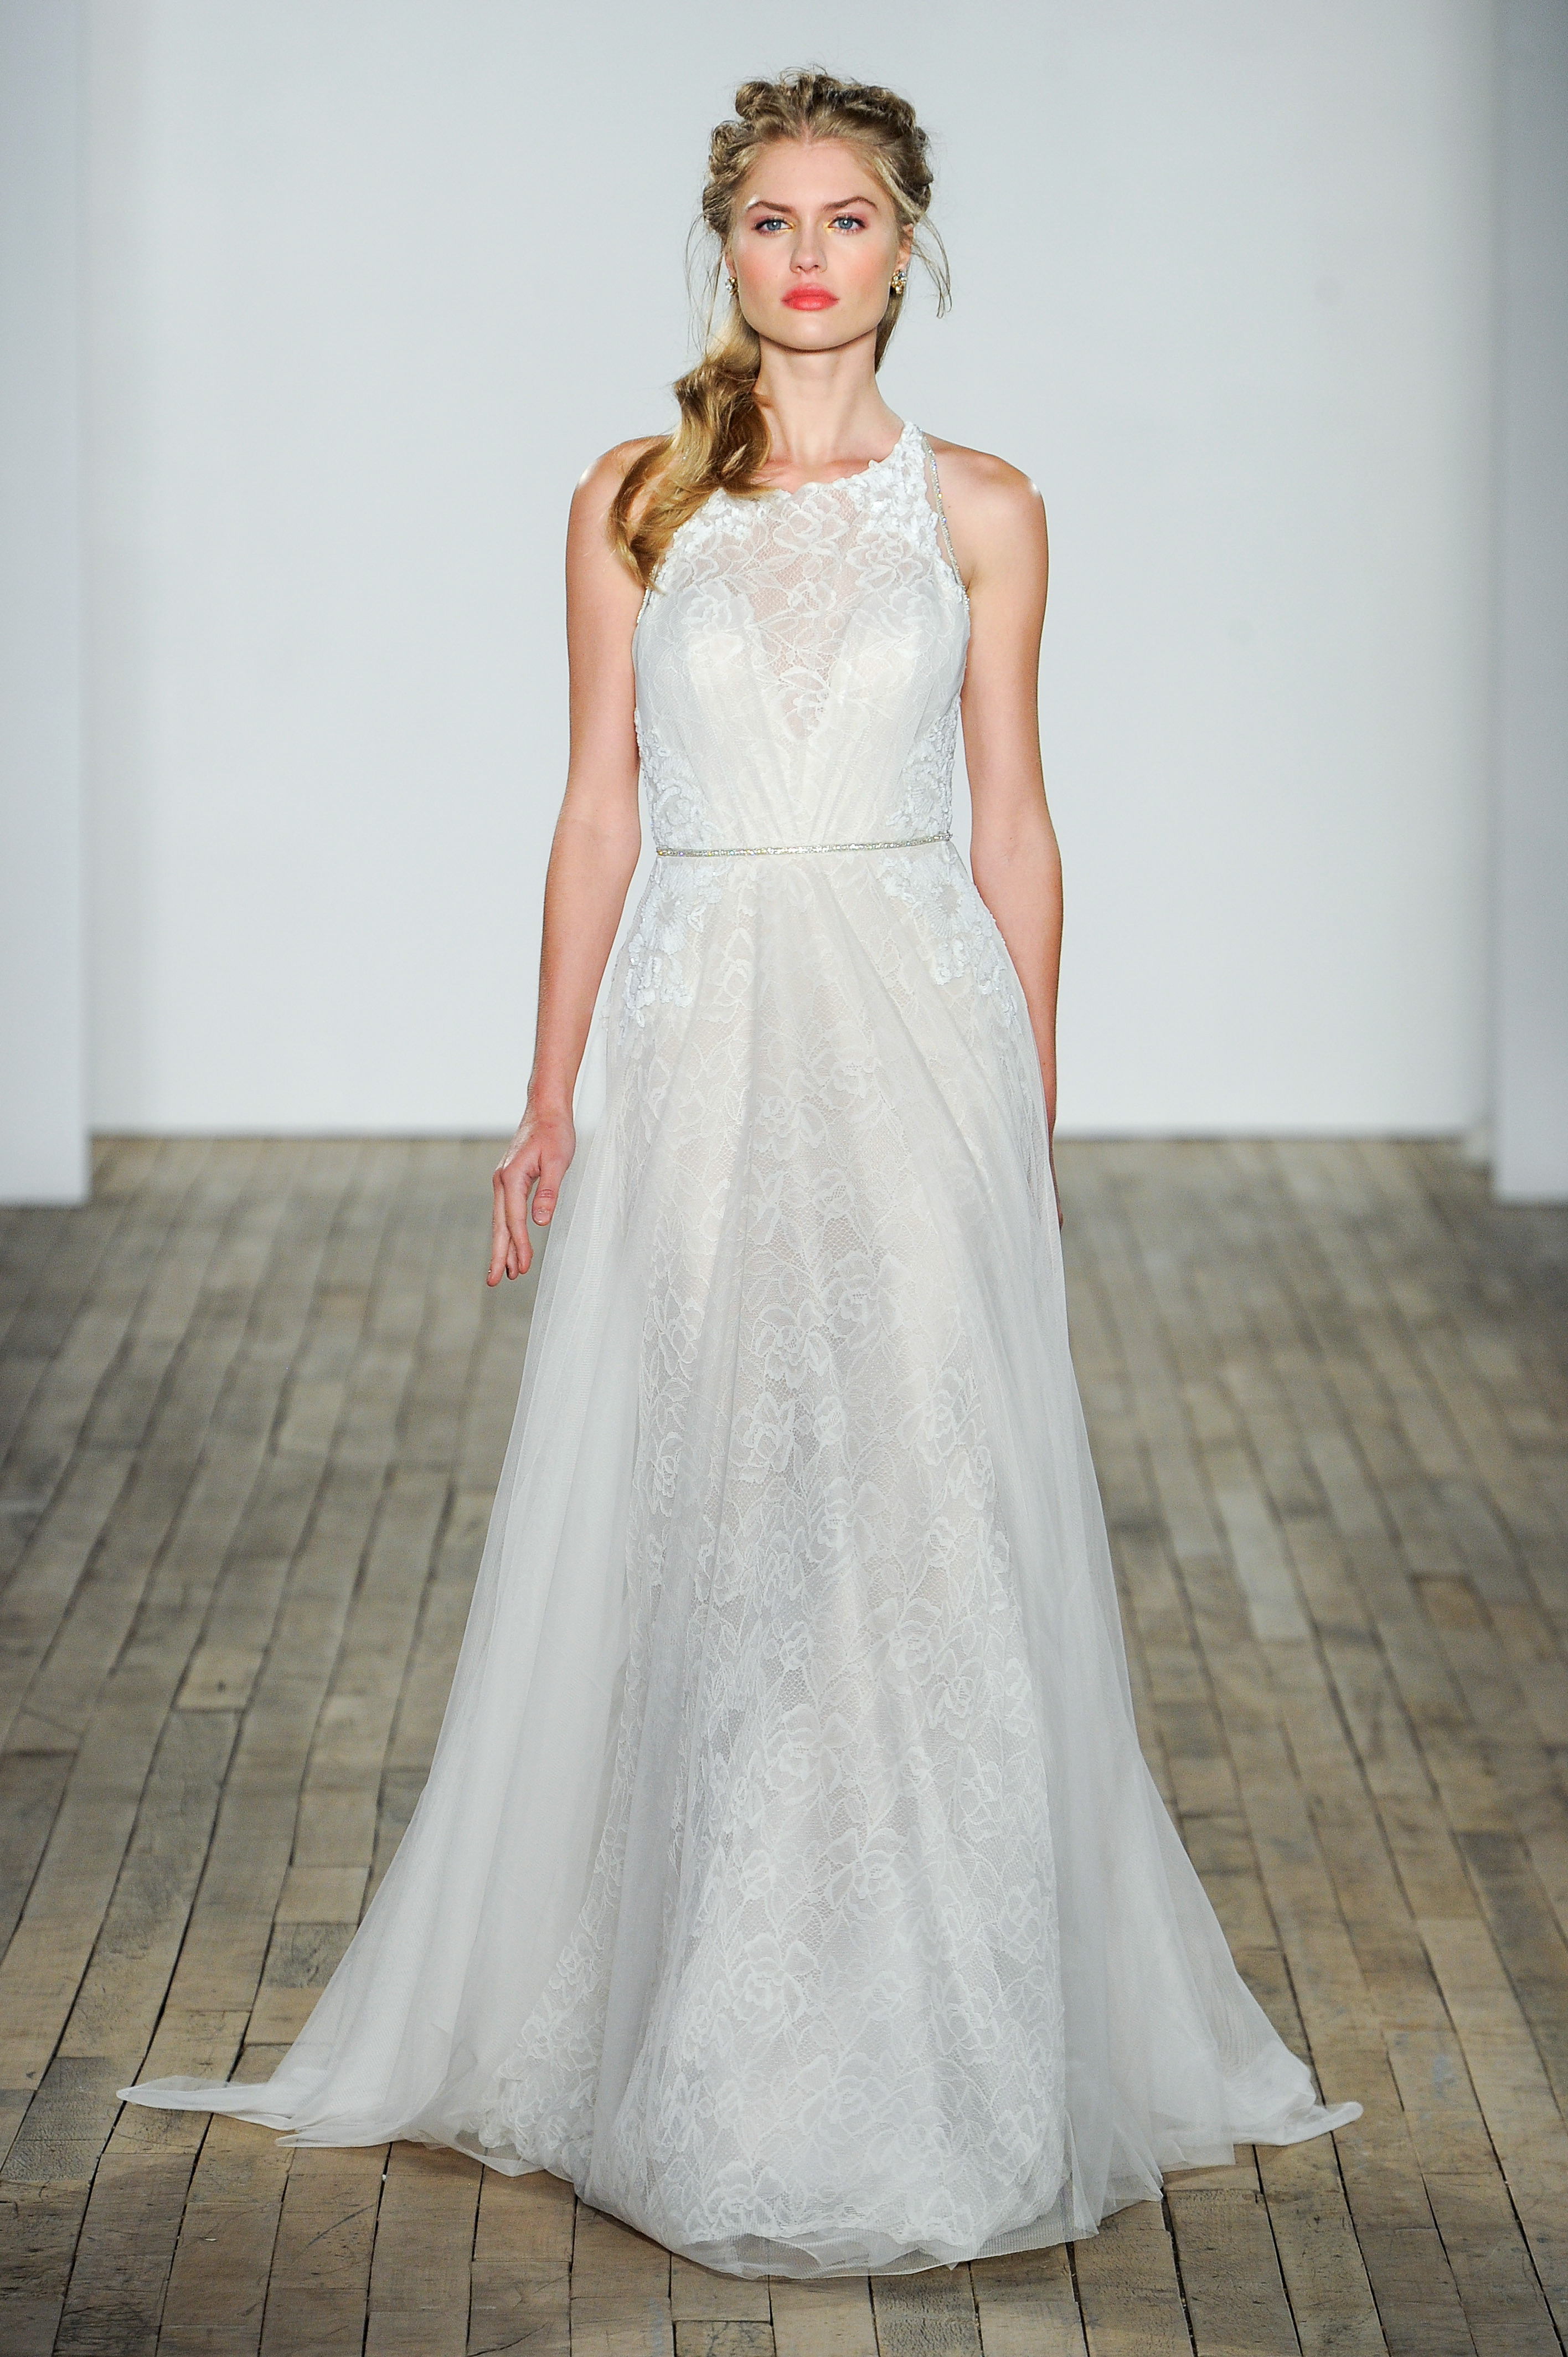 jlm blush by hayley paige wedding dress fall 2018 high neck lace